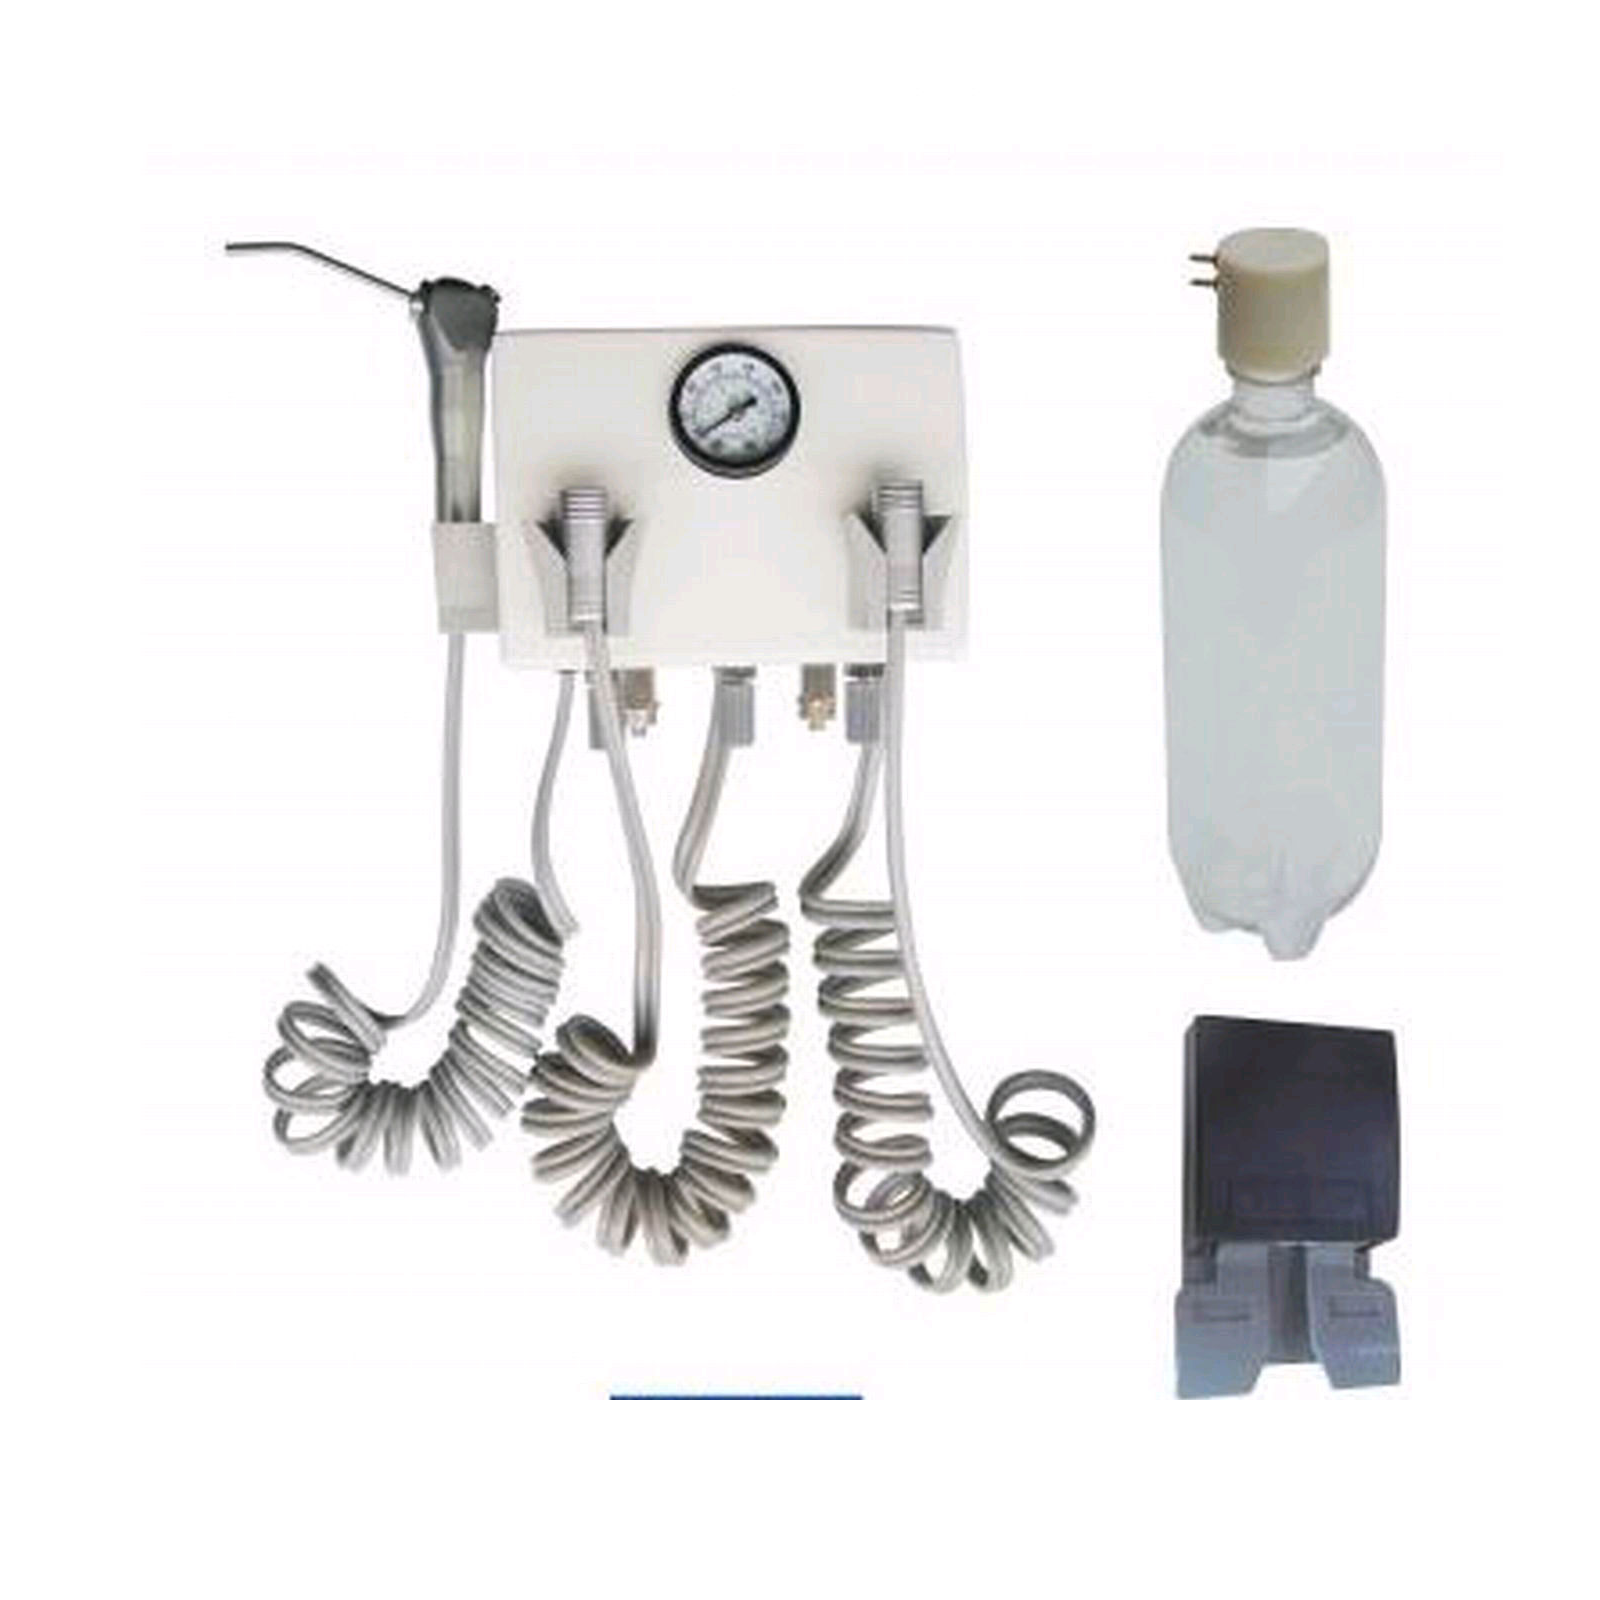 Wall Mounted Dental Turbine Unit Compatible With Compressor 4H/2H